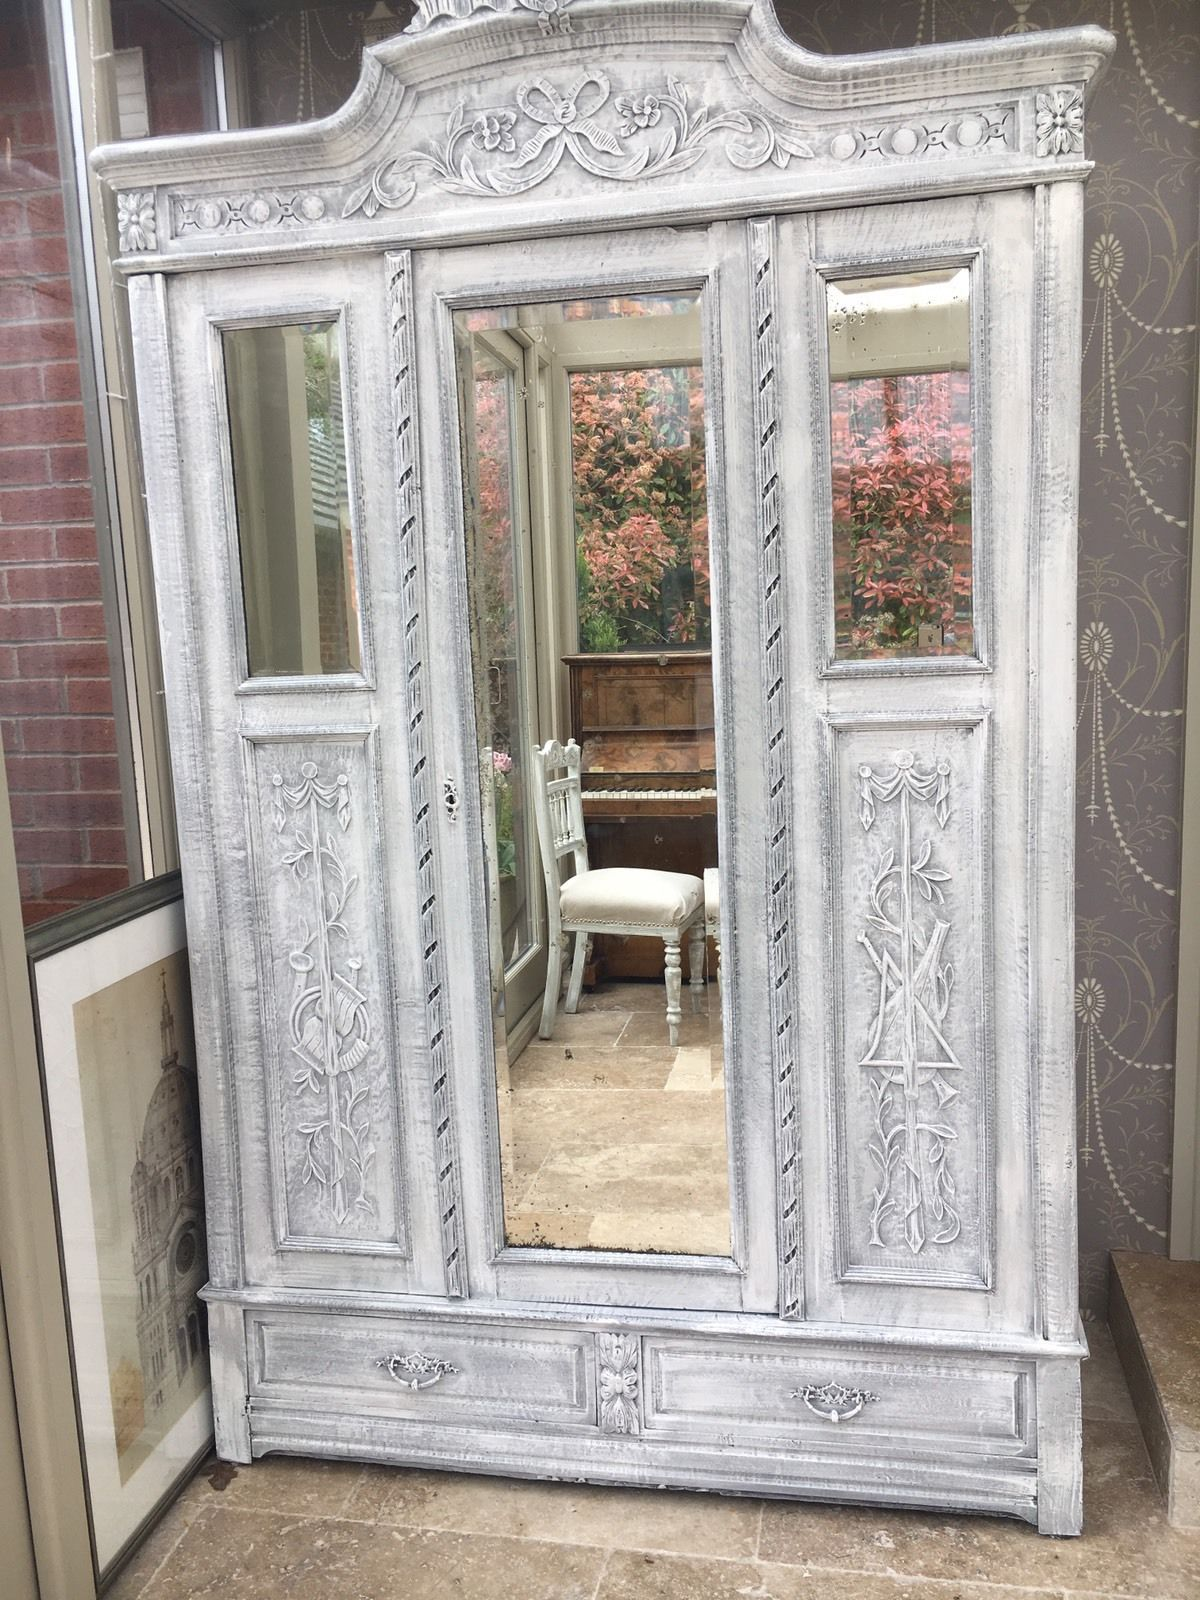 china beech wardrobe product bedroom solid wood classical style nsxneodxnrkh spanish